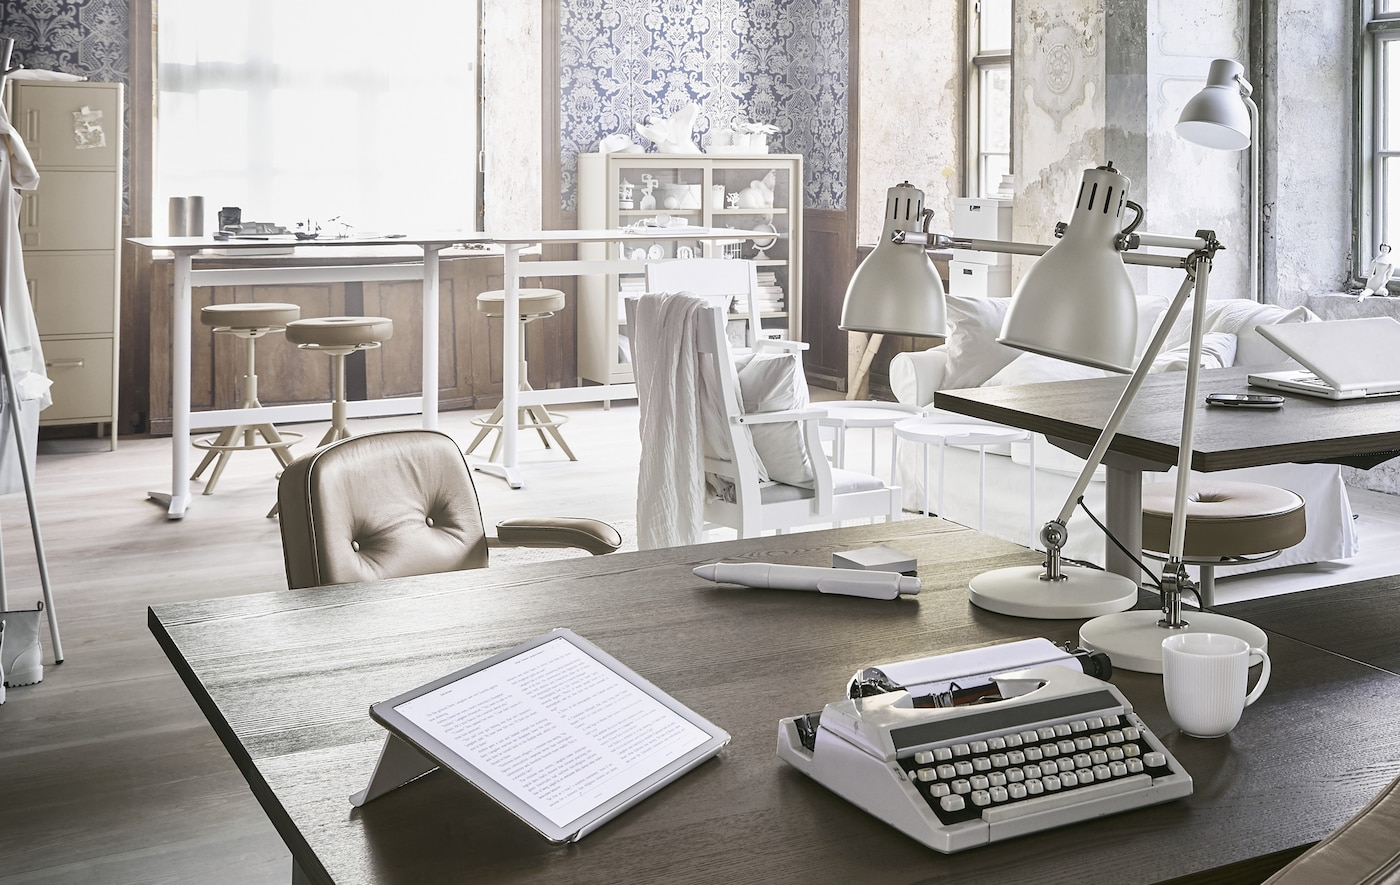 A brown desk in an office accessorised with a type writer, tablet and two work lamps.